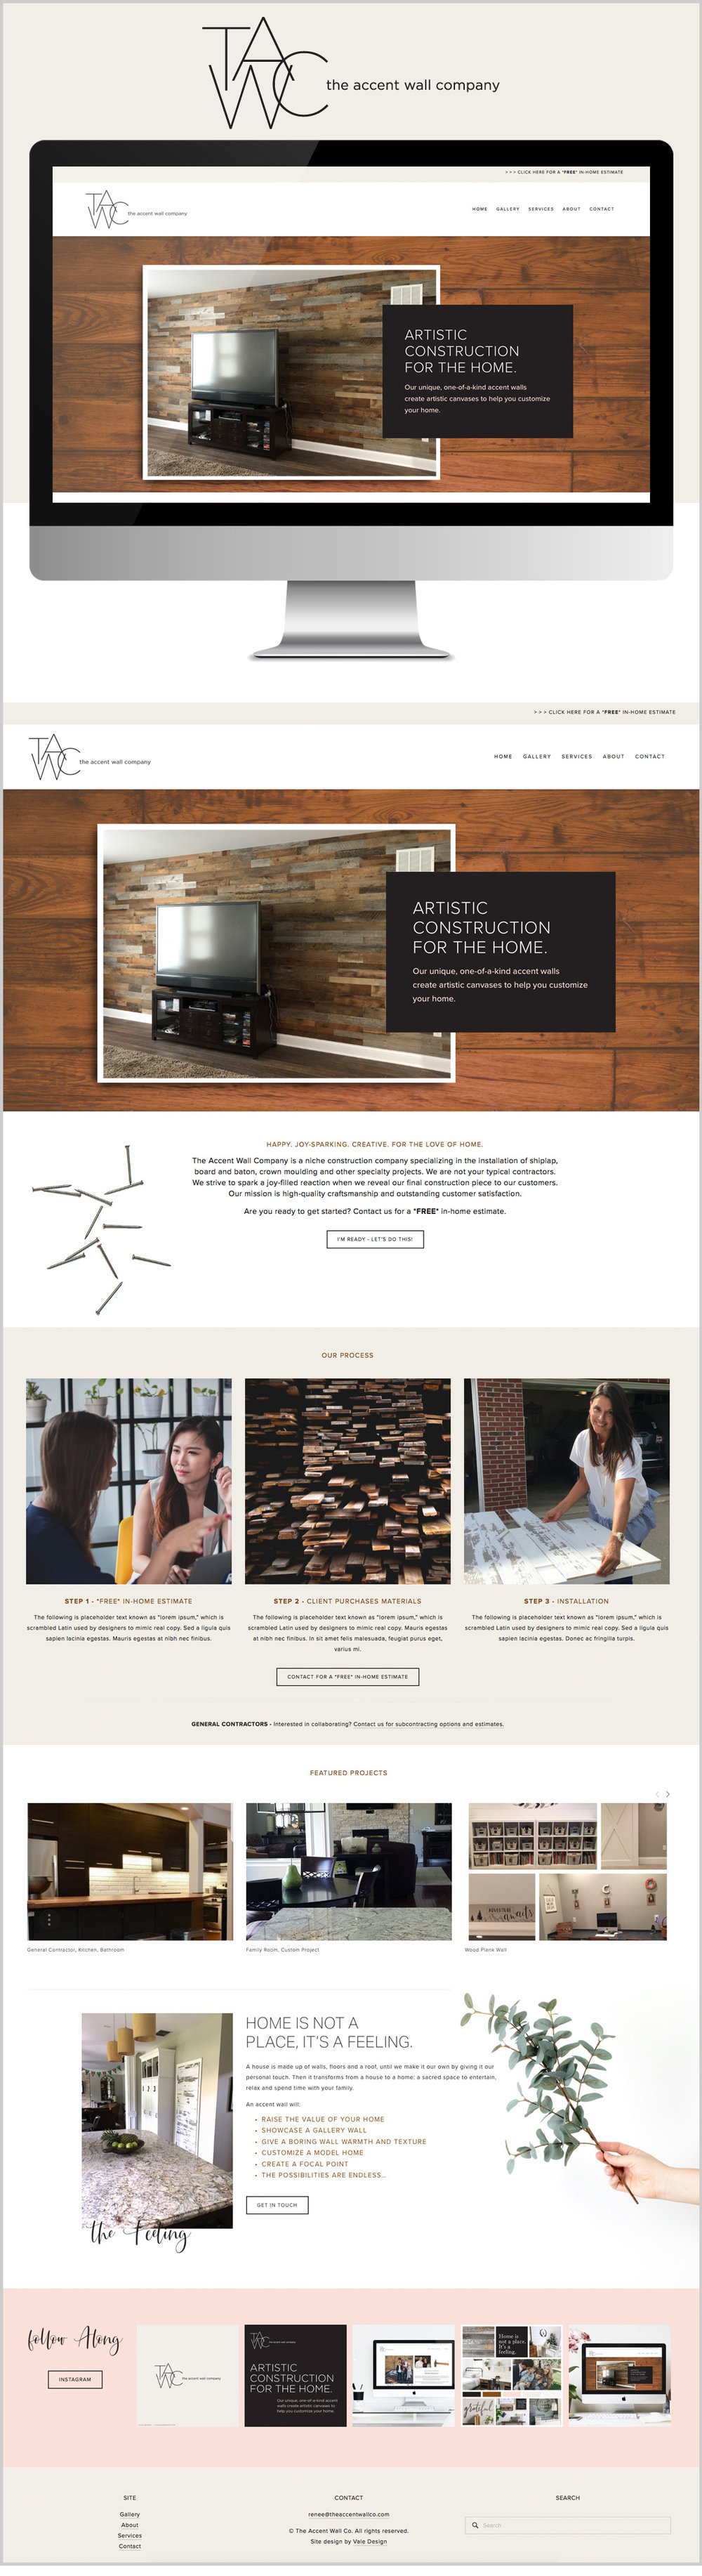 Vale Design - Website - The Accent Wall Co